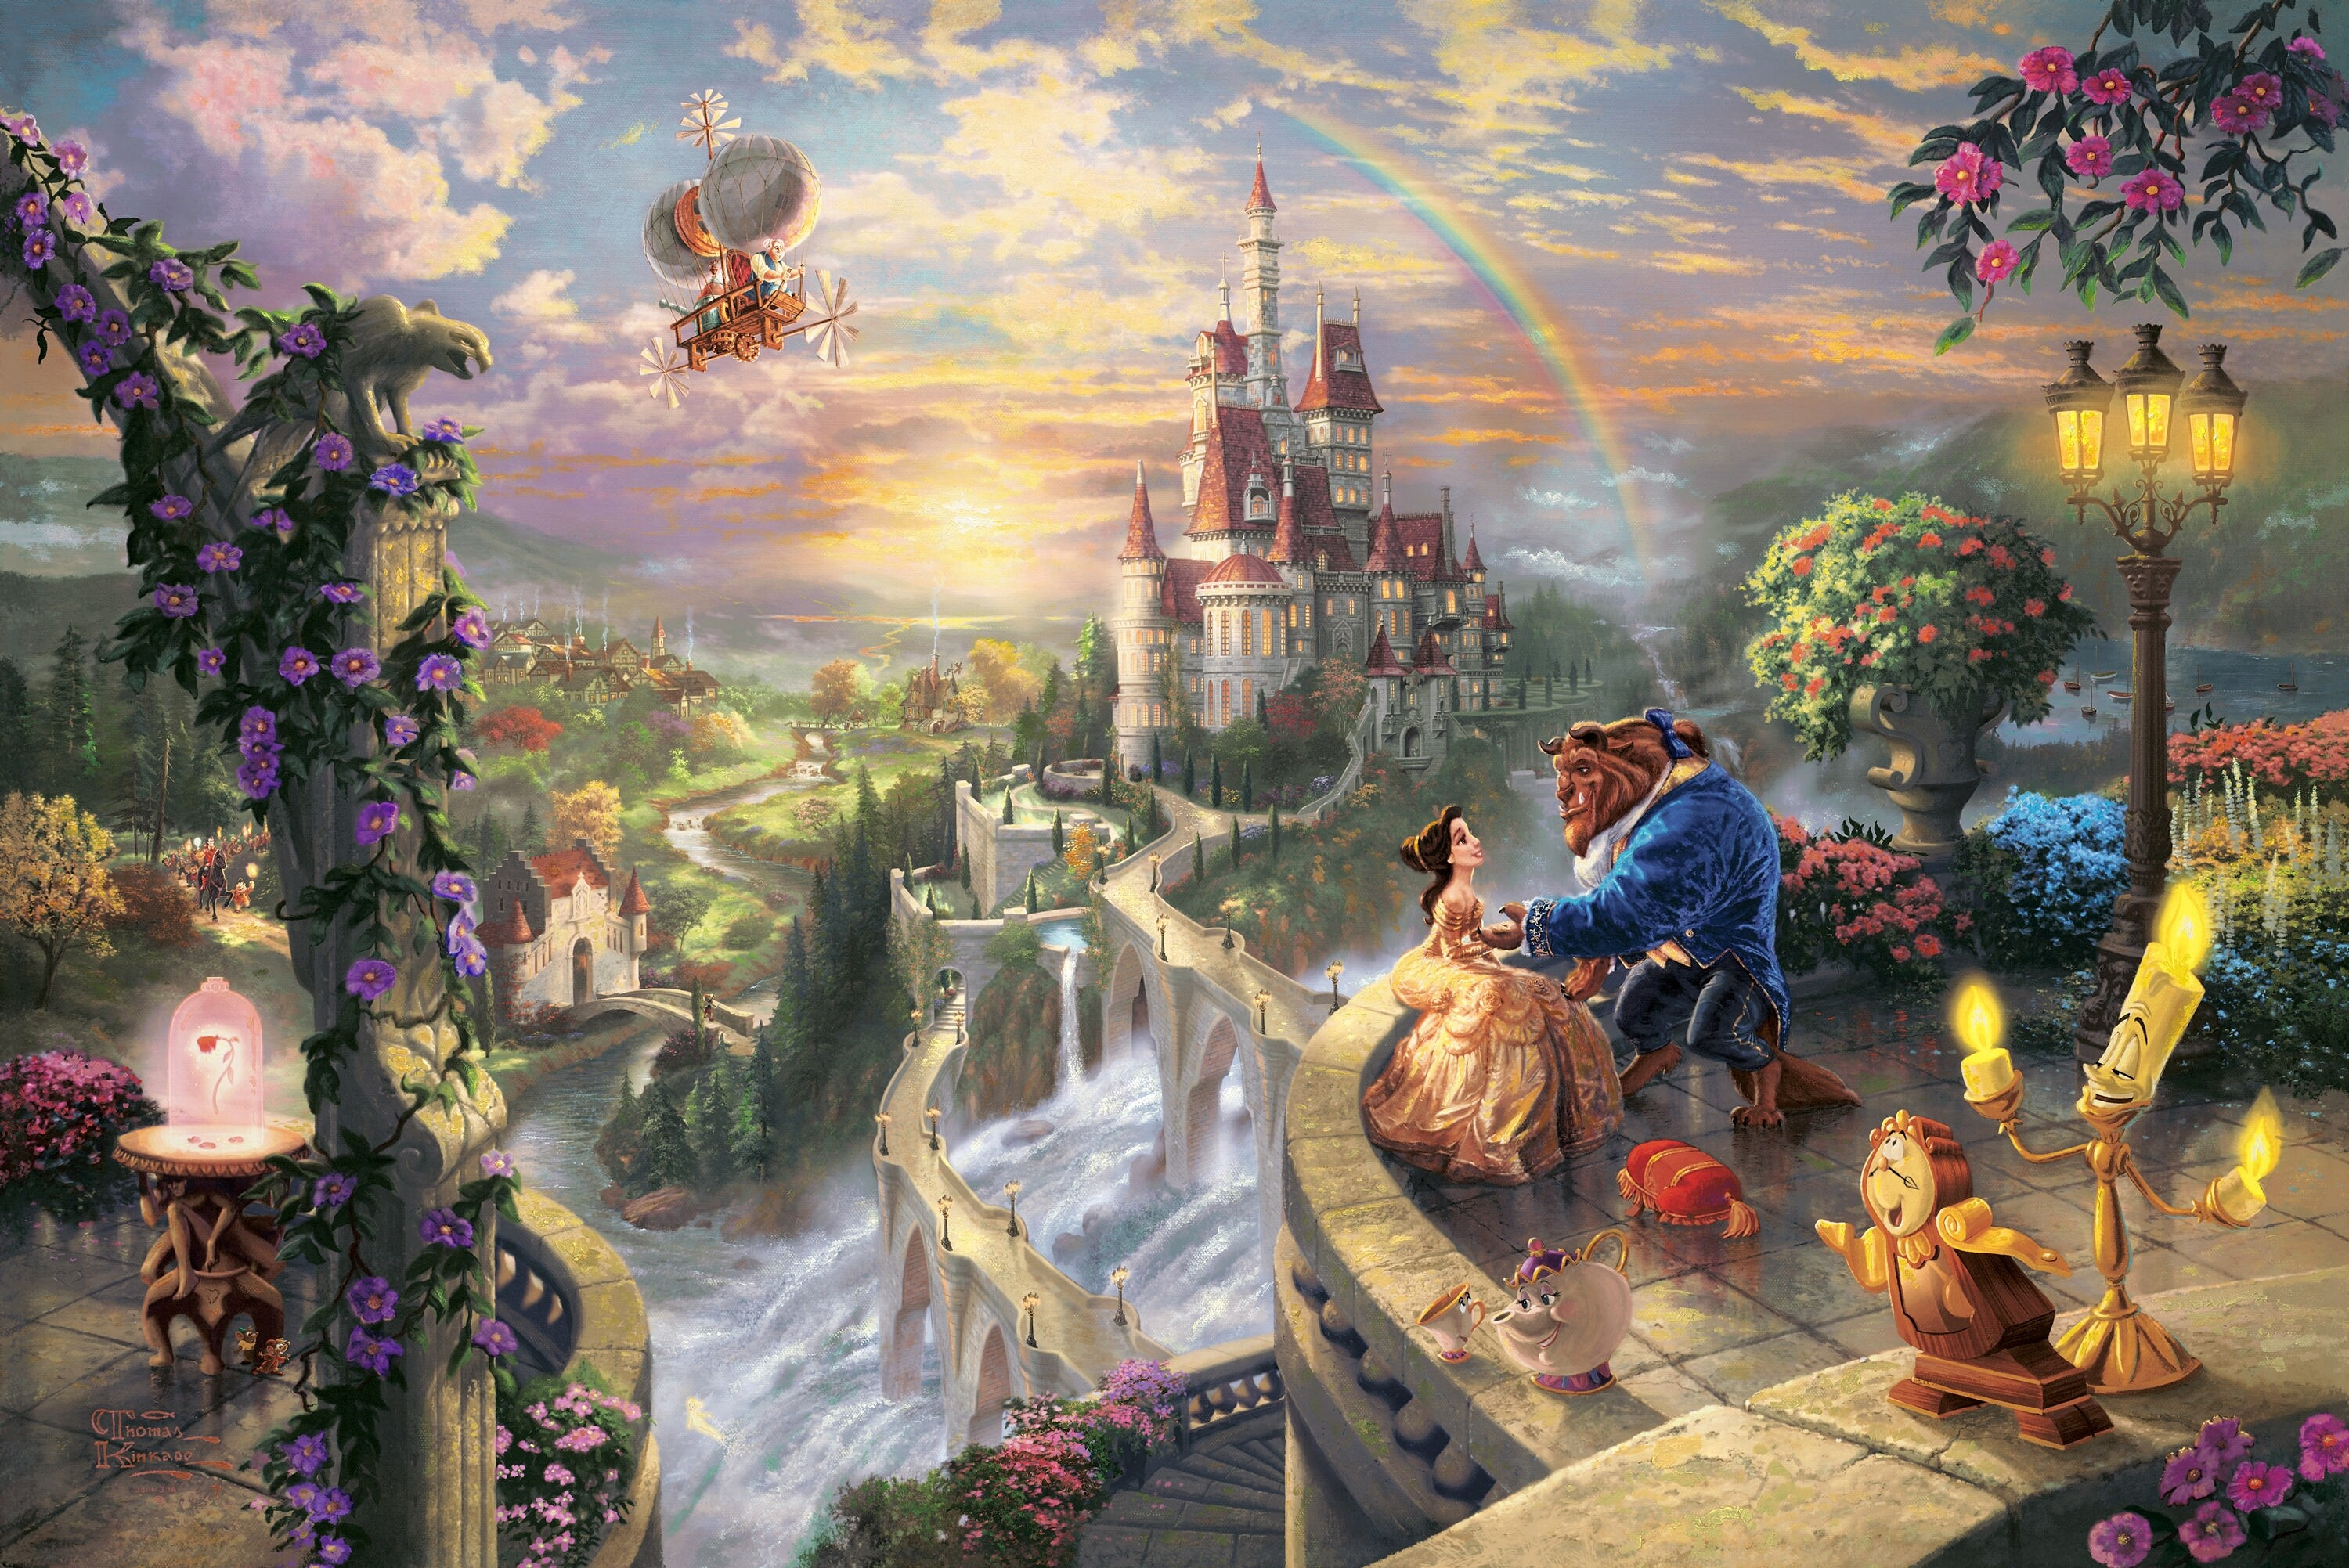 Beauty And The Beast Background Download Free Stunning Full Hd